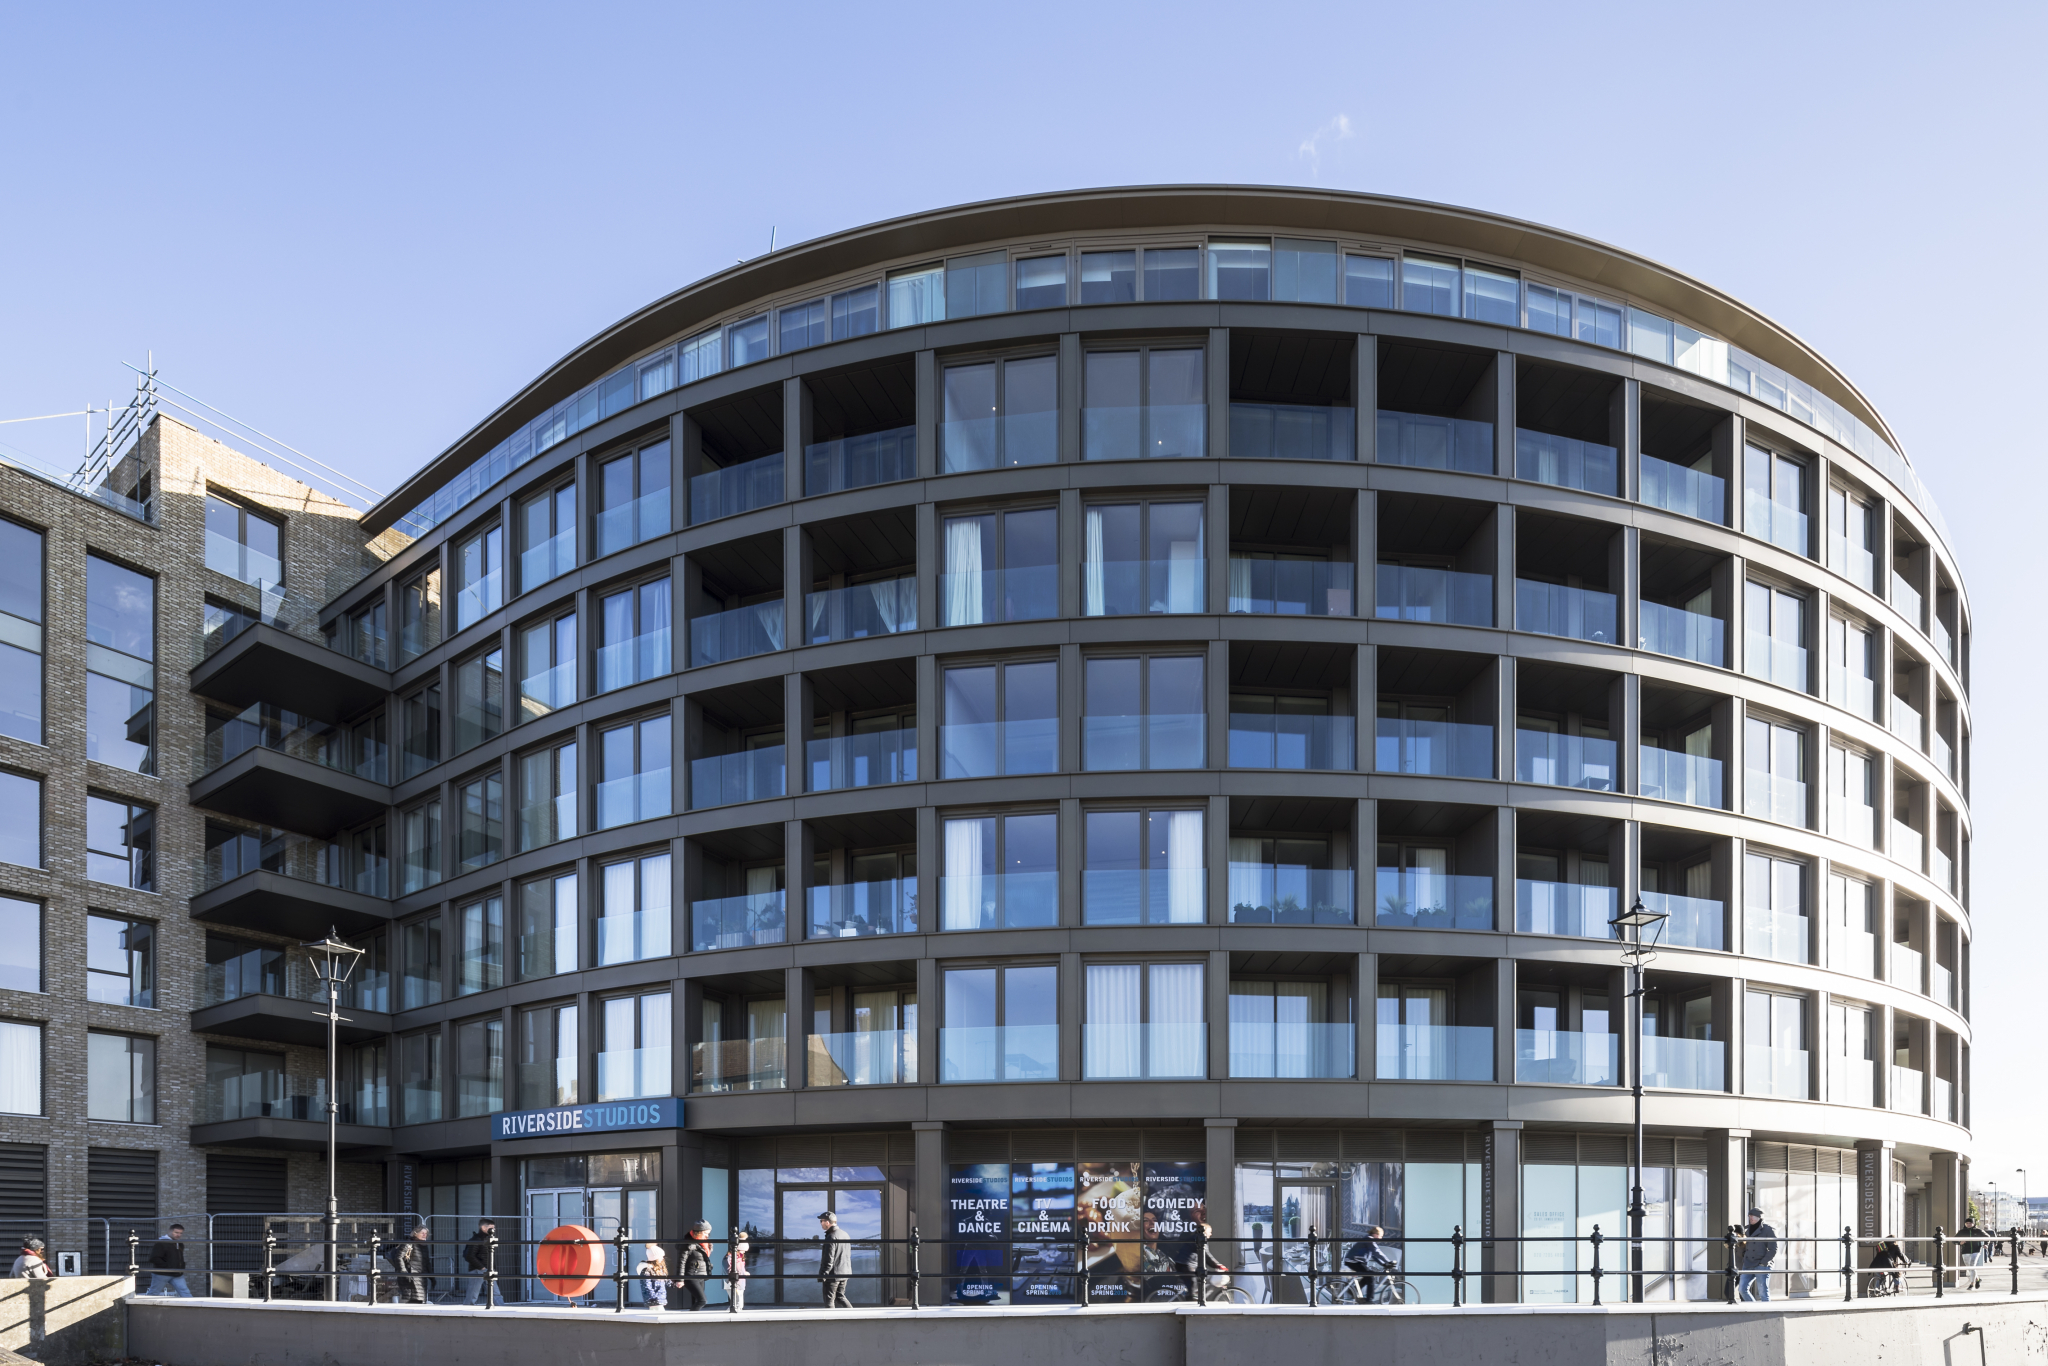 New flats in Hammersmith